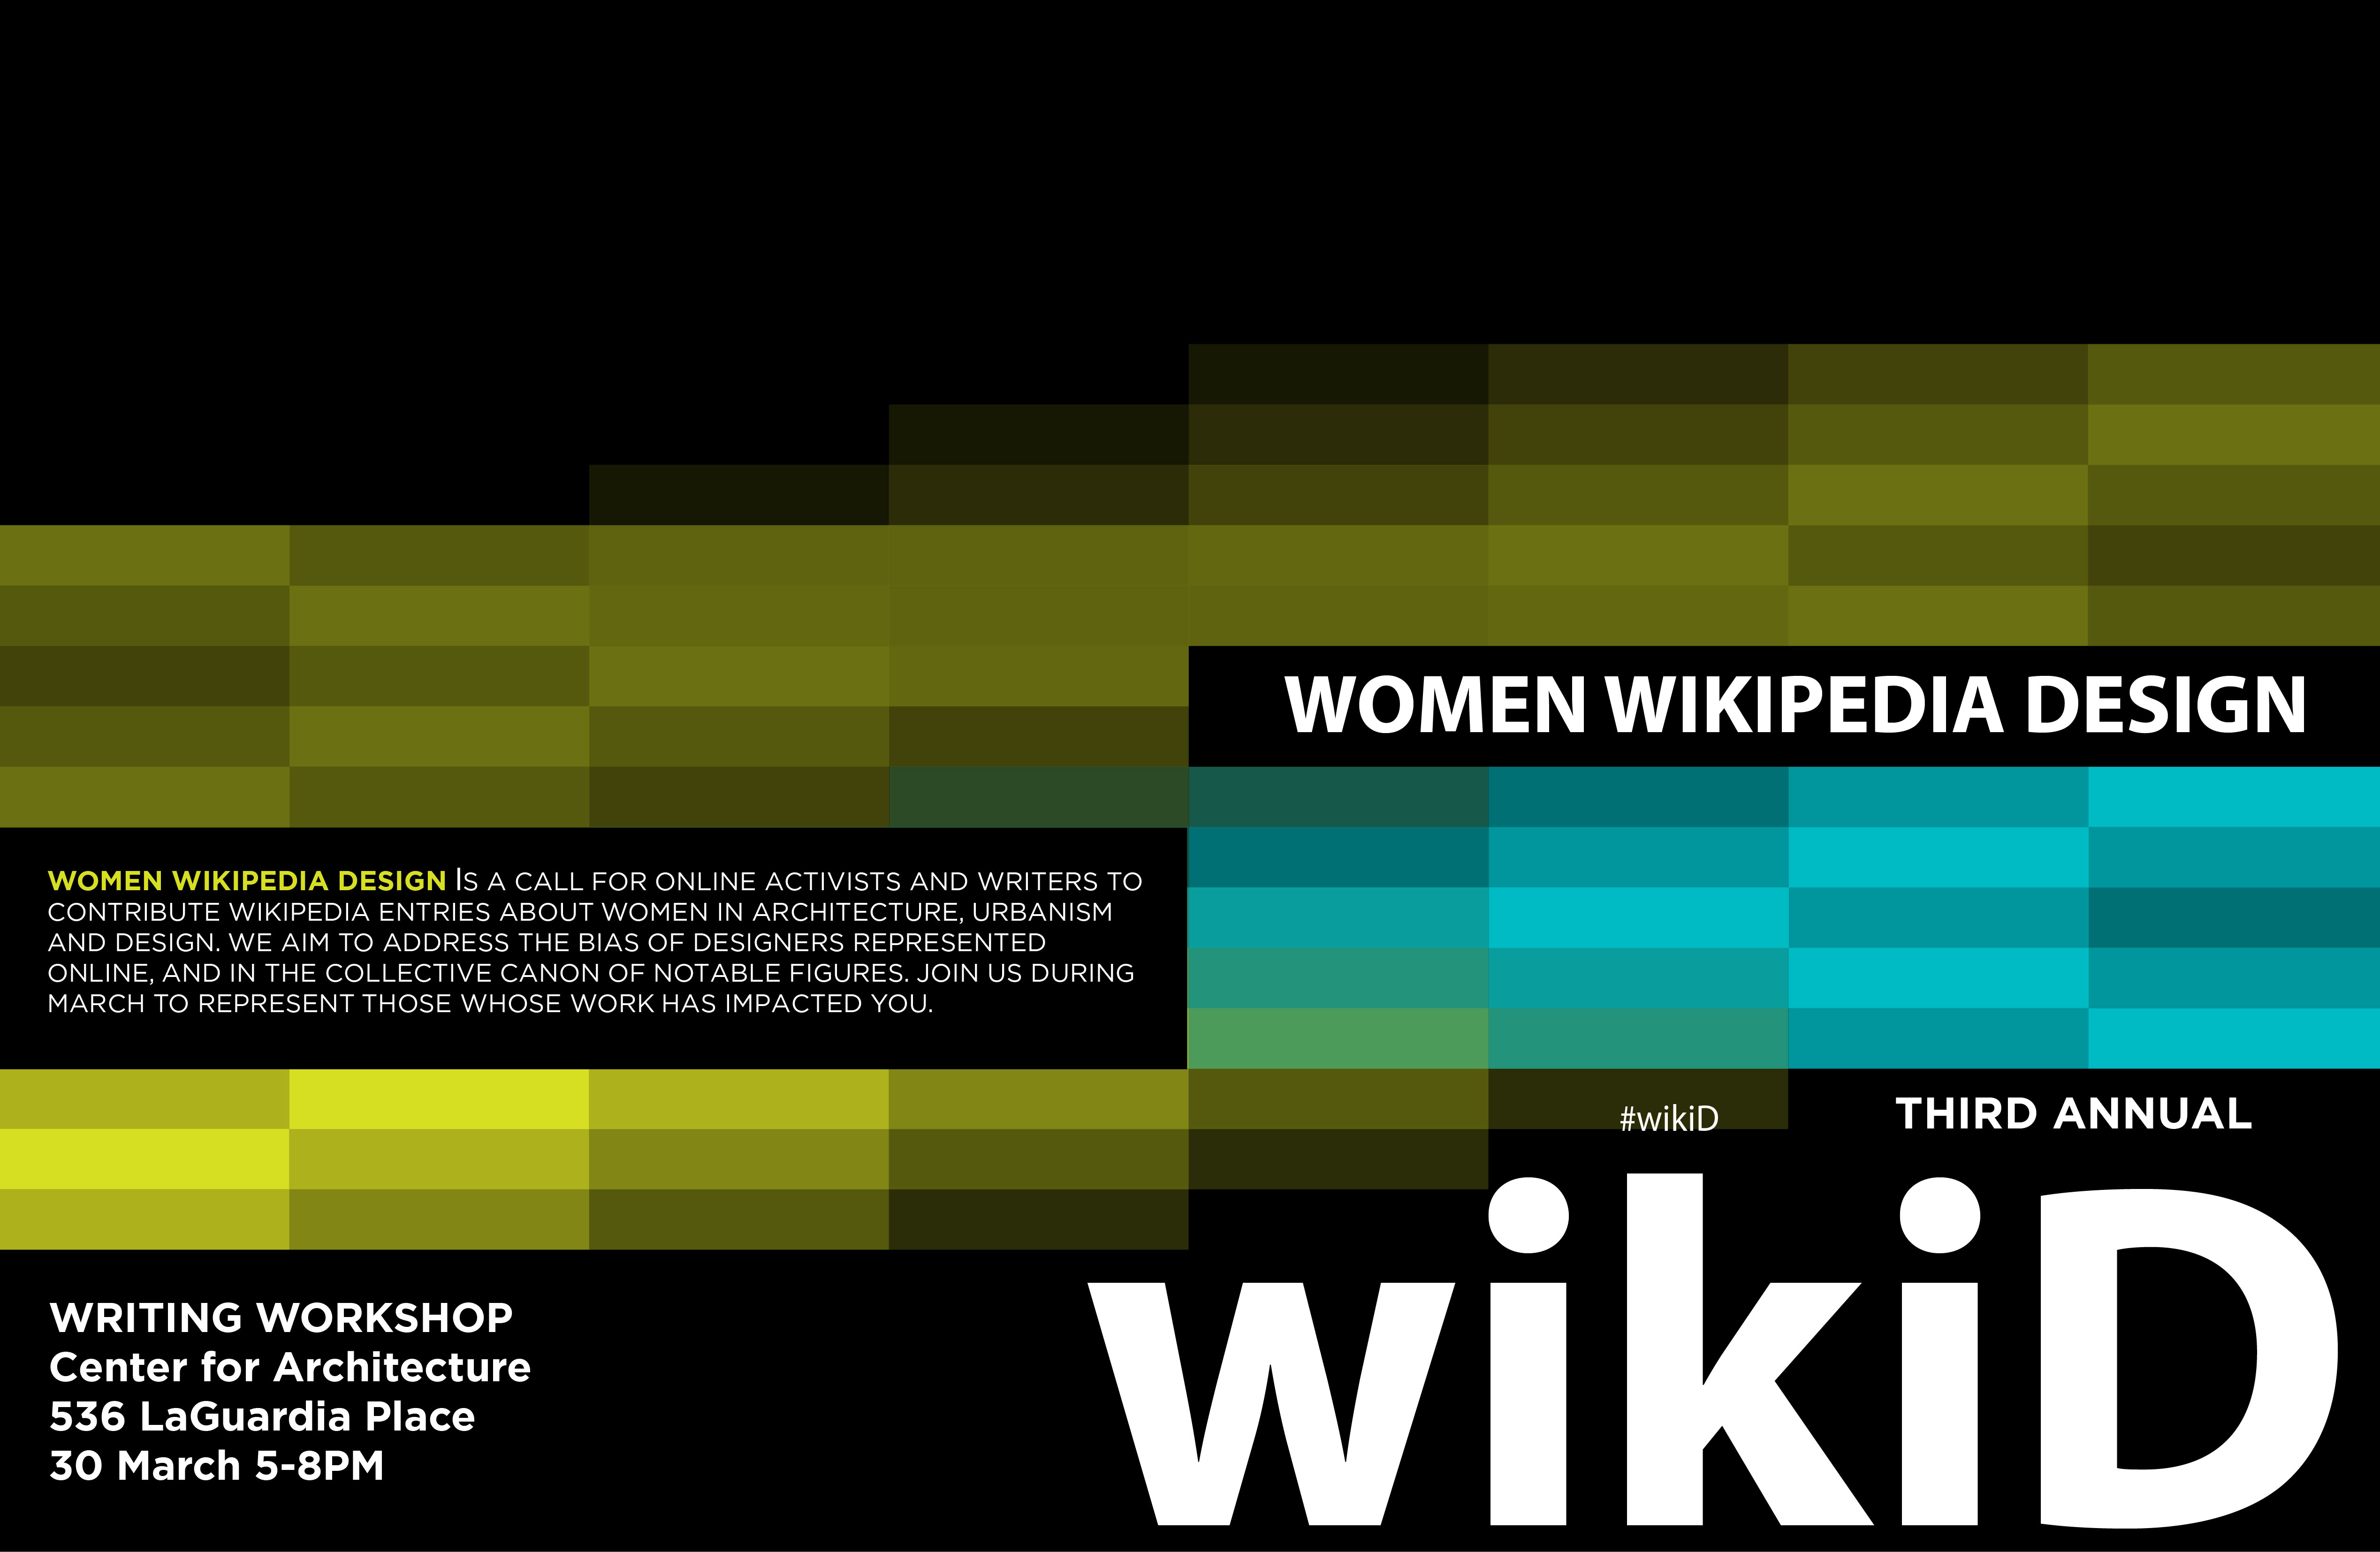 Poster design wikipedia - File Wikipedia Women Design March 2017 Poster For Nyc Jpg